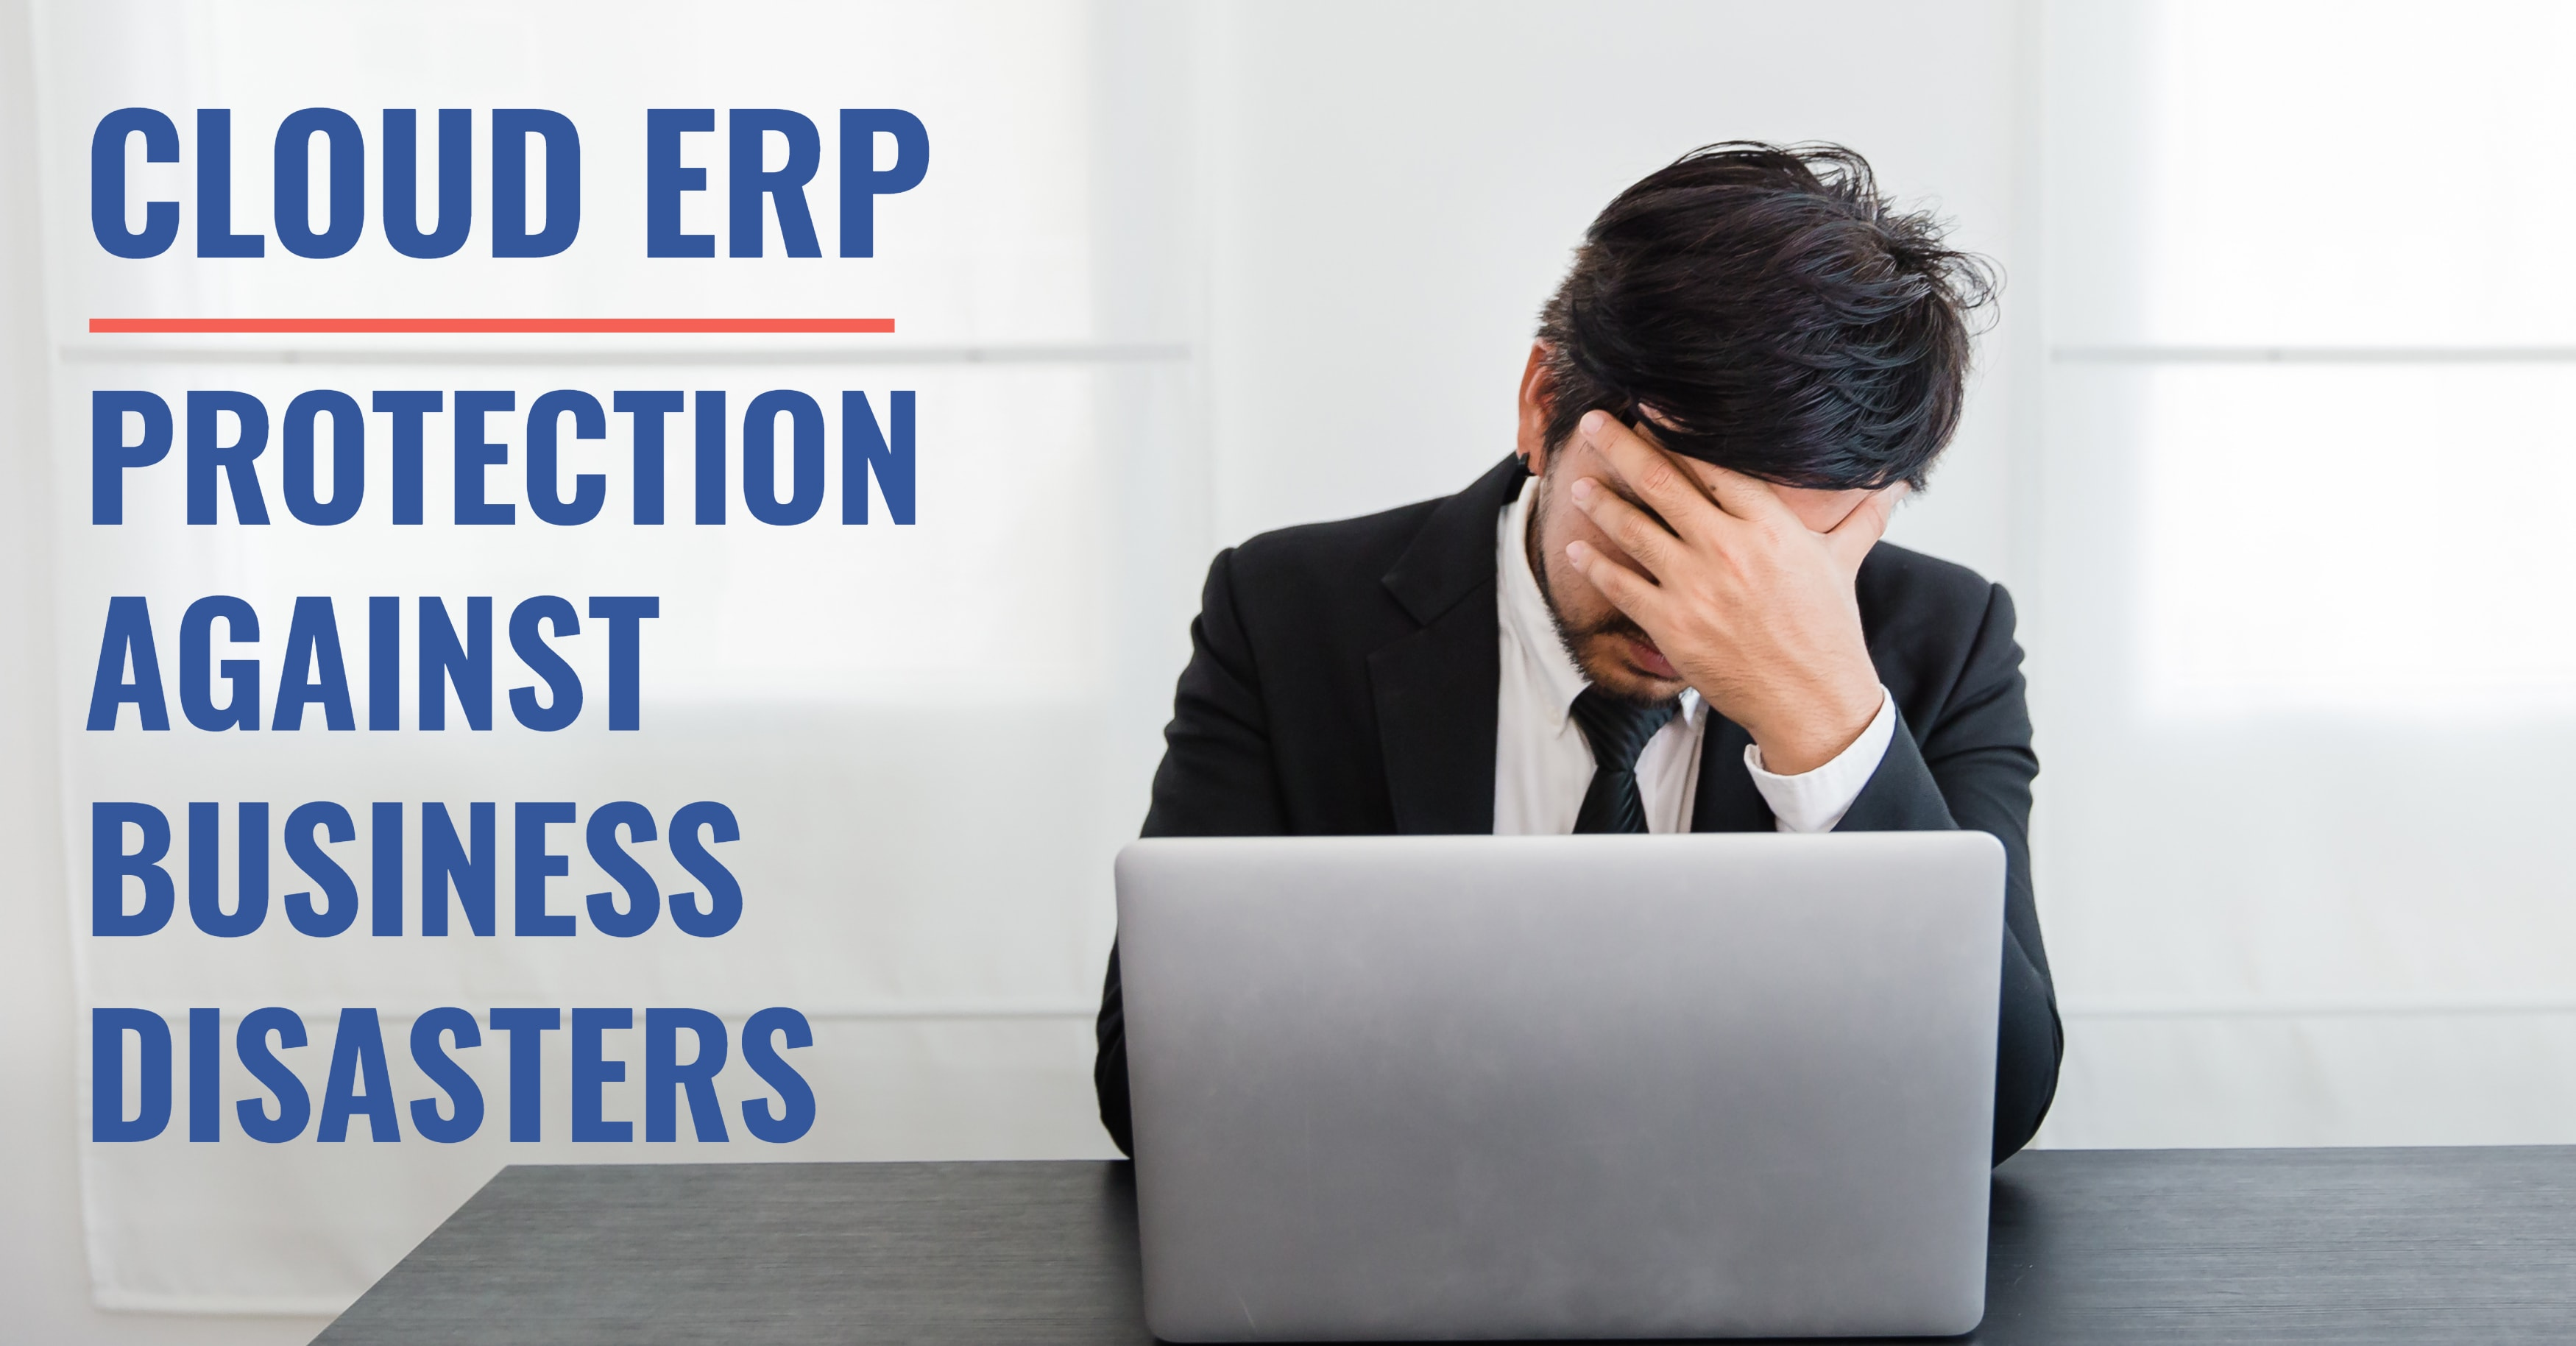 Cloud ERP: Your Protection Against Business Disasters